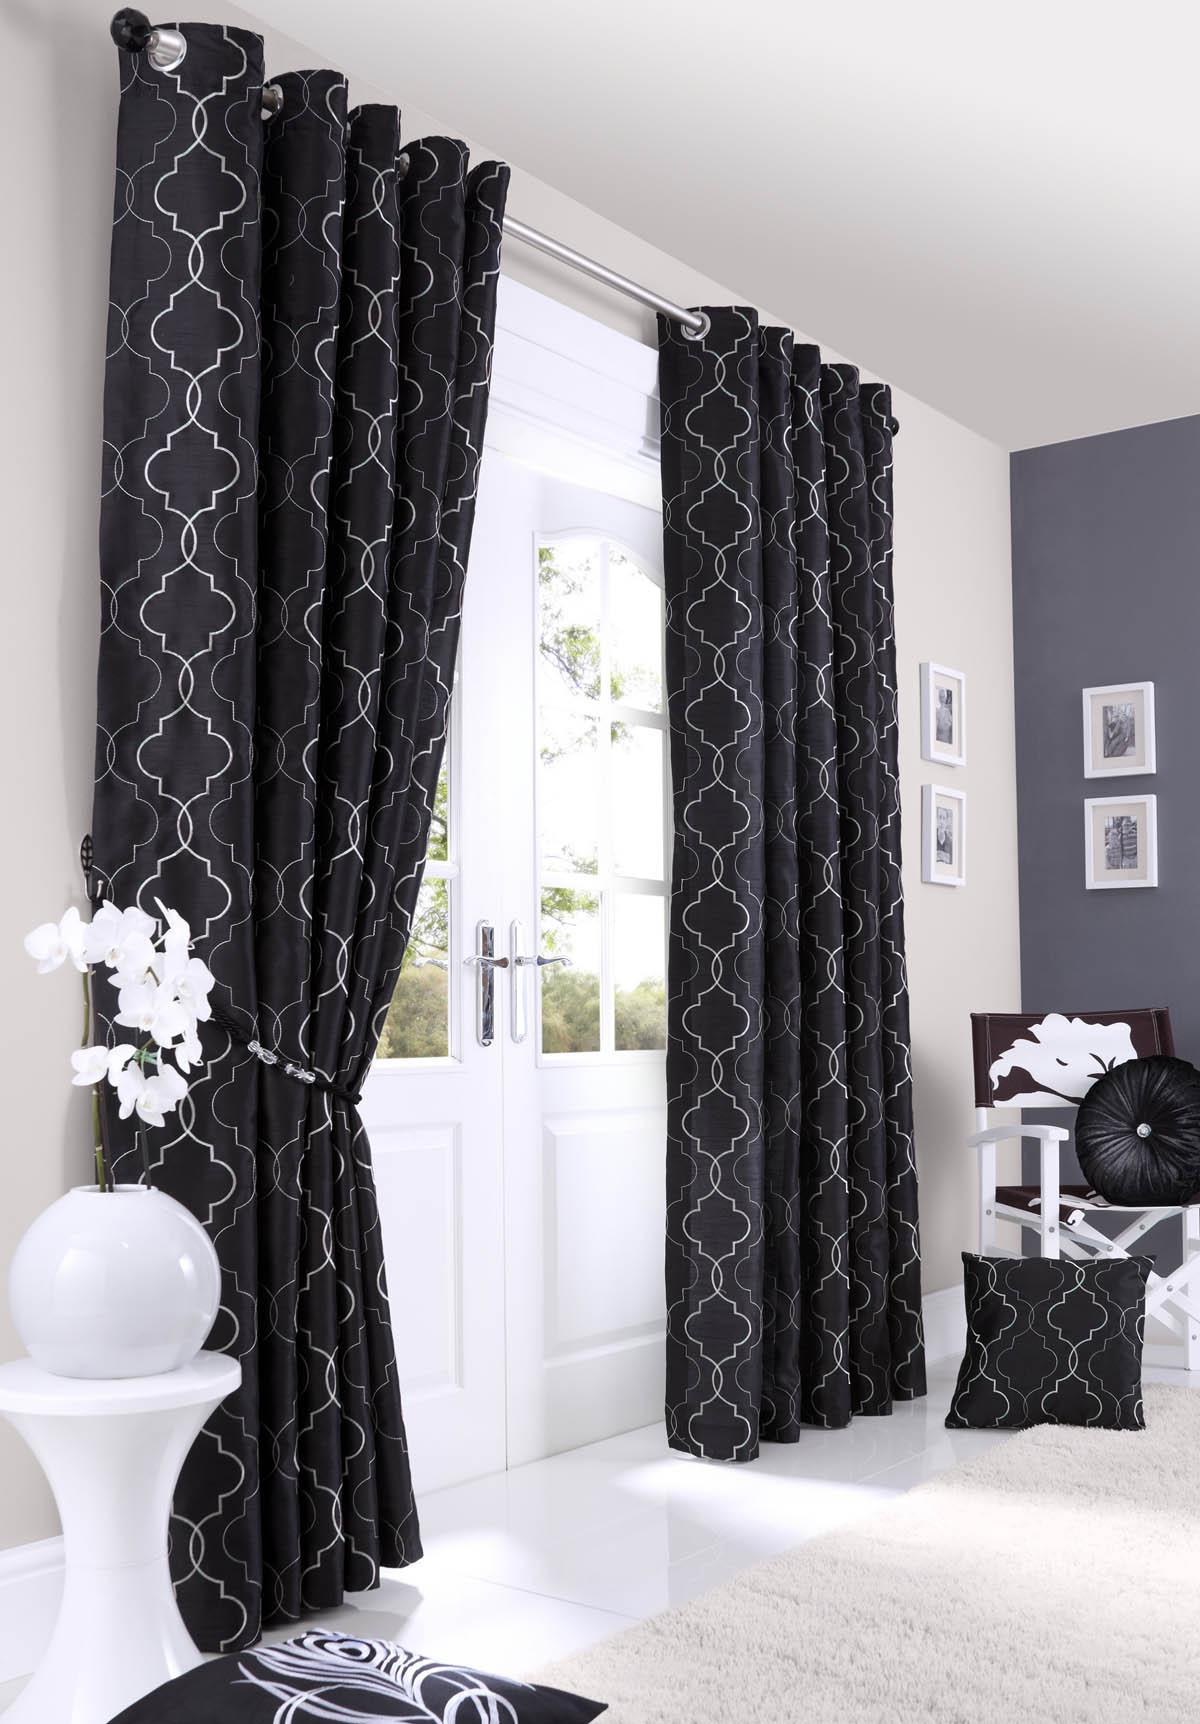 Black and white curtains - Midtown Eyelet Lined Curtains